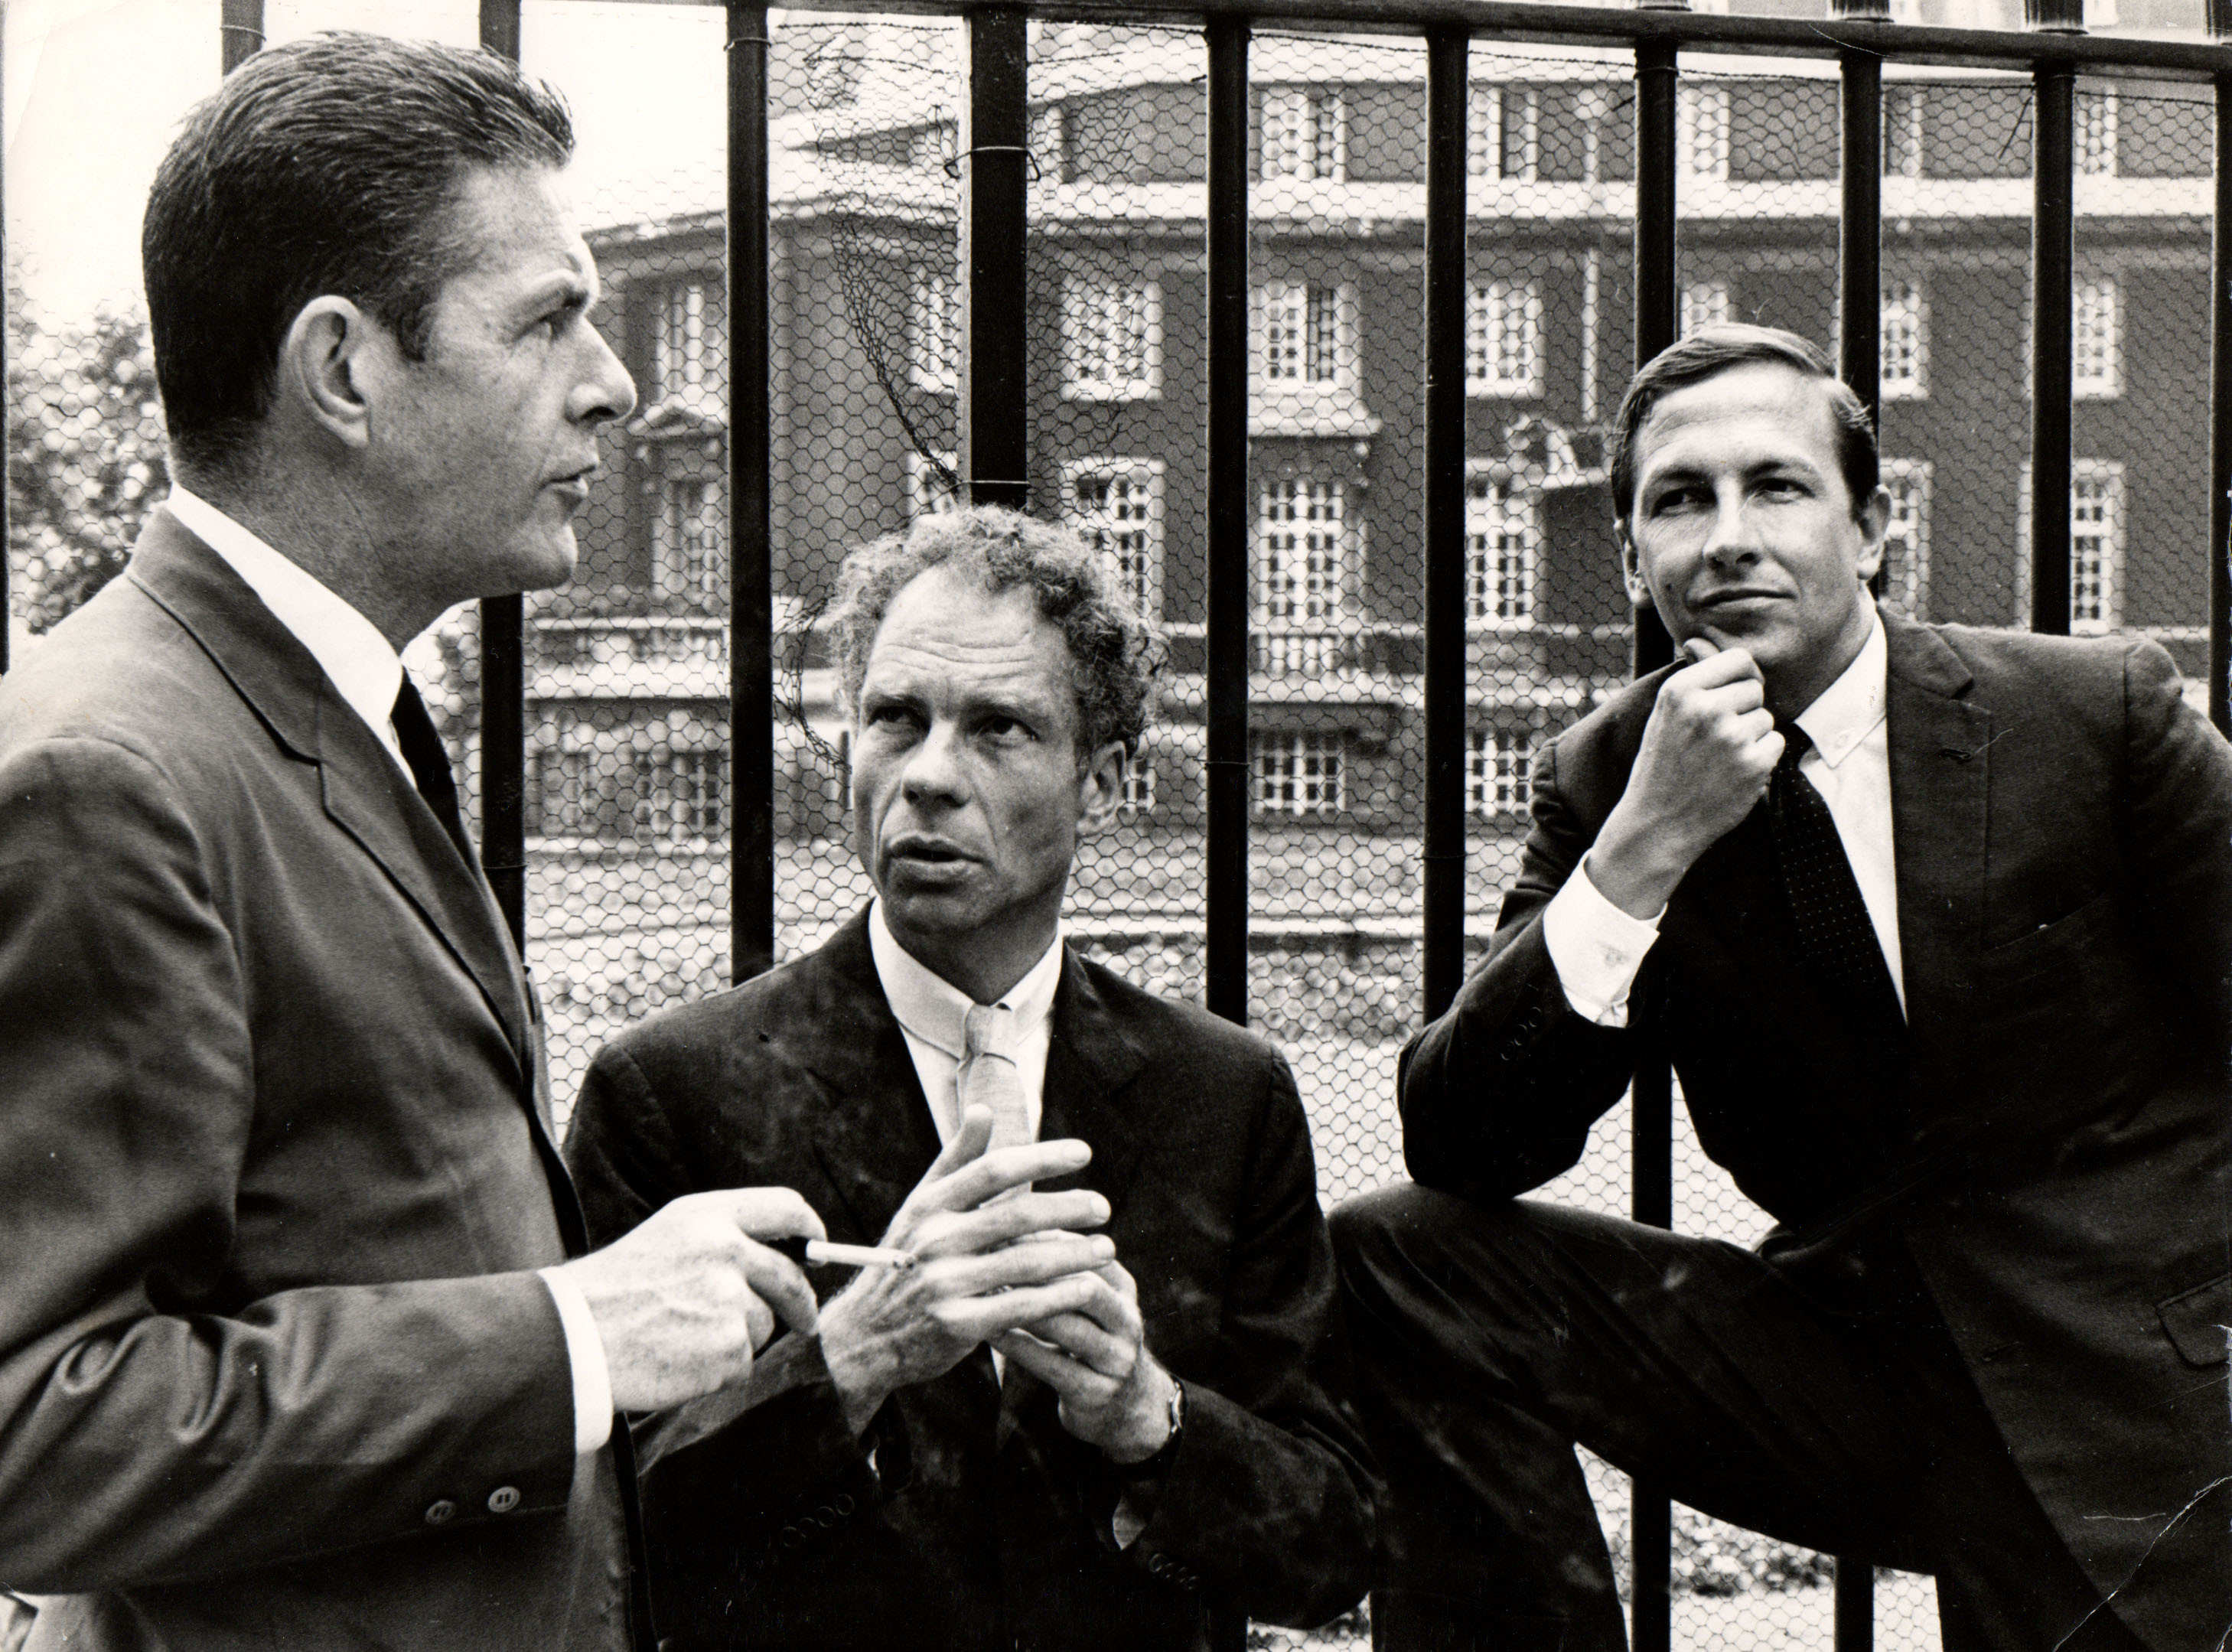 John Cage, Merce Cunningham and Robert Rauschenberg in 1964. Sadler Wells, 1964. Image courtesy of the Merce Cunningham Trust / photo Douglas Jeffrey / © Victoria and Albert Museum, London